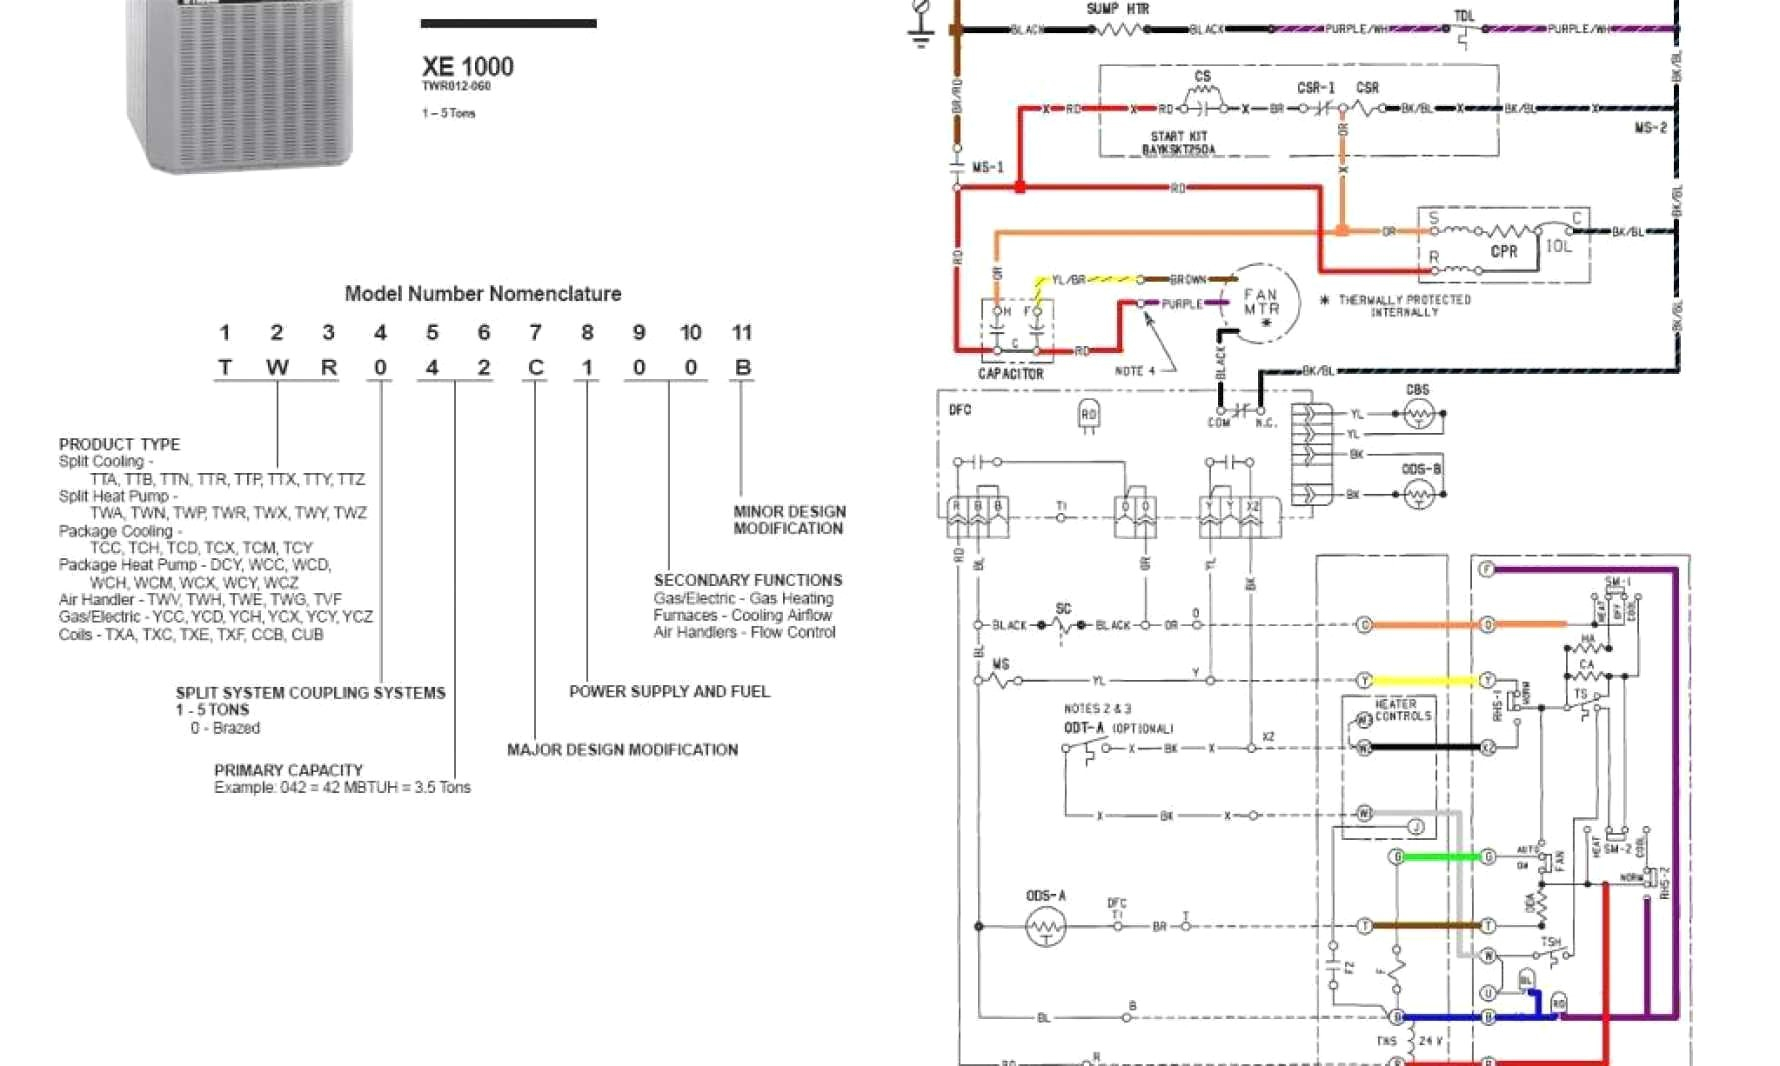 trane thermostat wiring diagram tutorial Collection-trane xe 800 wiring diagram heat pumps wire center u2022 rh insurapro co 10-s